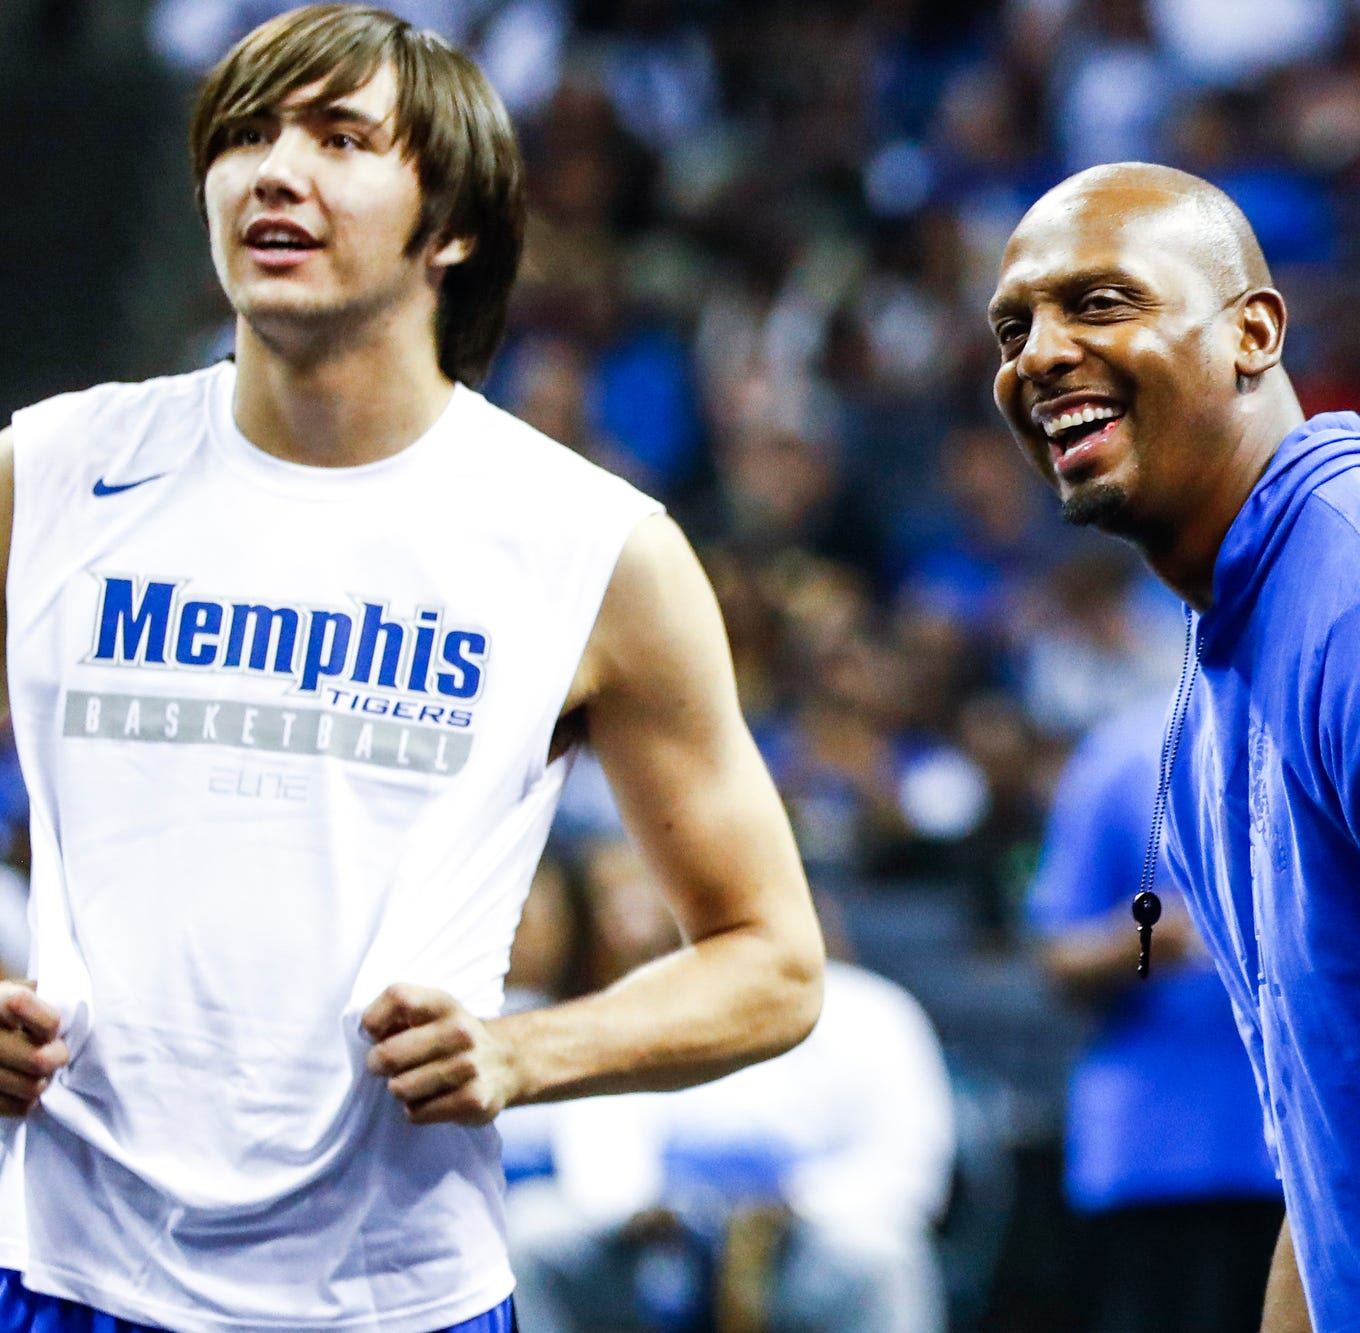 Memphis vs LeMoyne-Owen: How to follow Penny Hardaway's first exhibition game